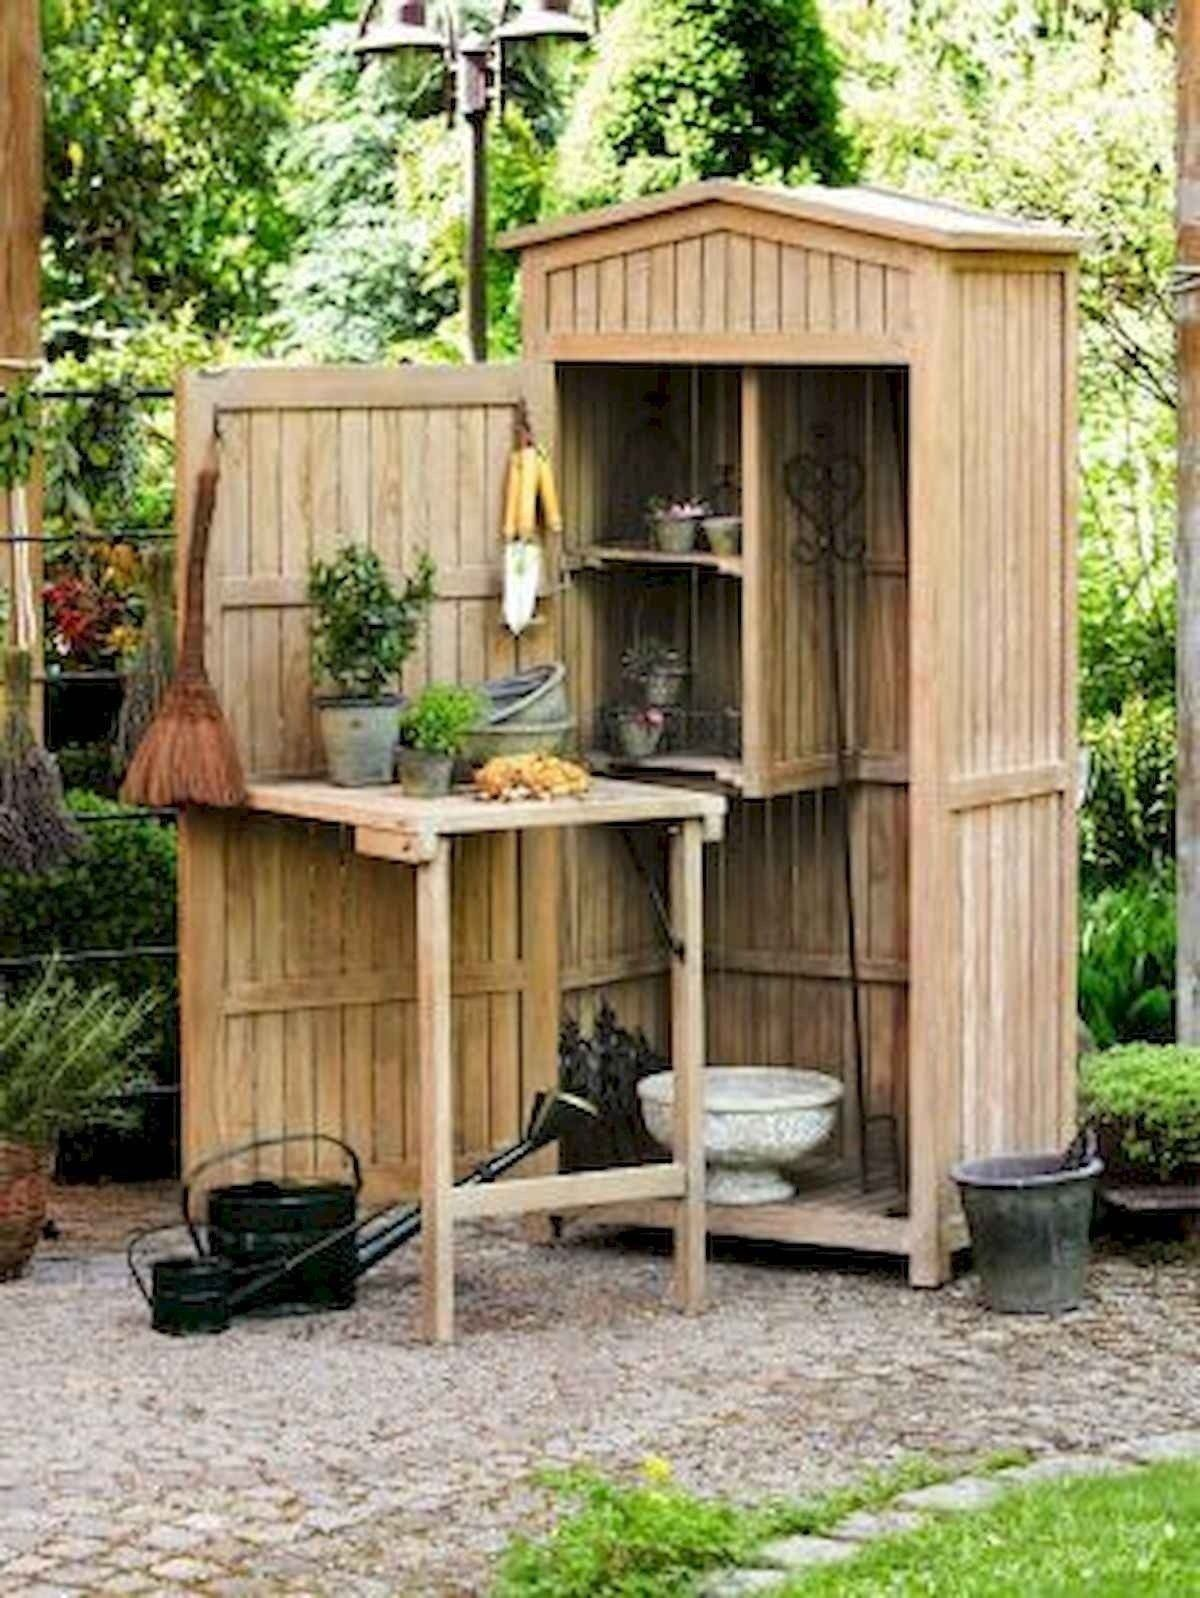 25 awesome unique small storage shed ideas for your garden on extraordinary unique small storage shed ideas for your garden little plans for building id=43982